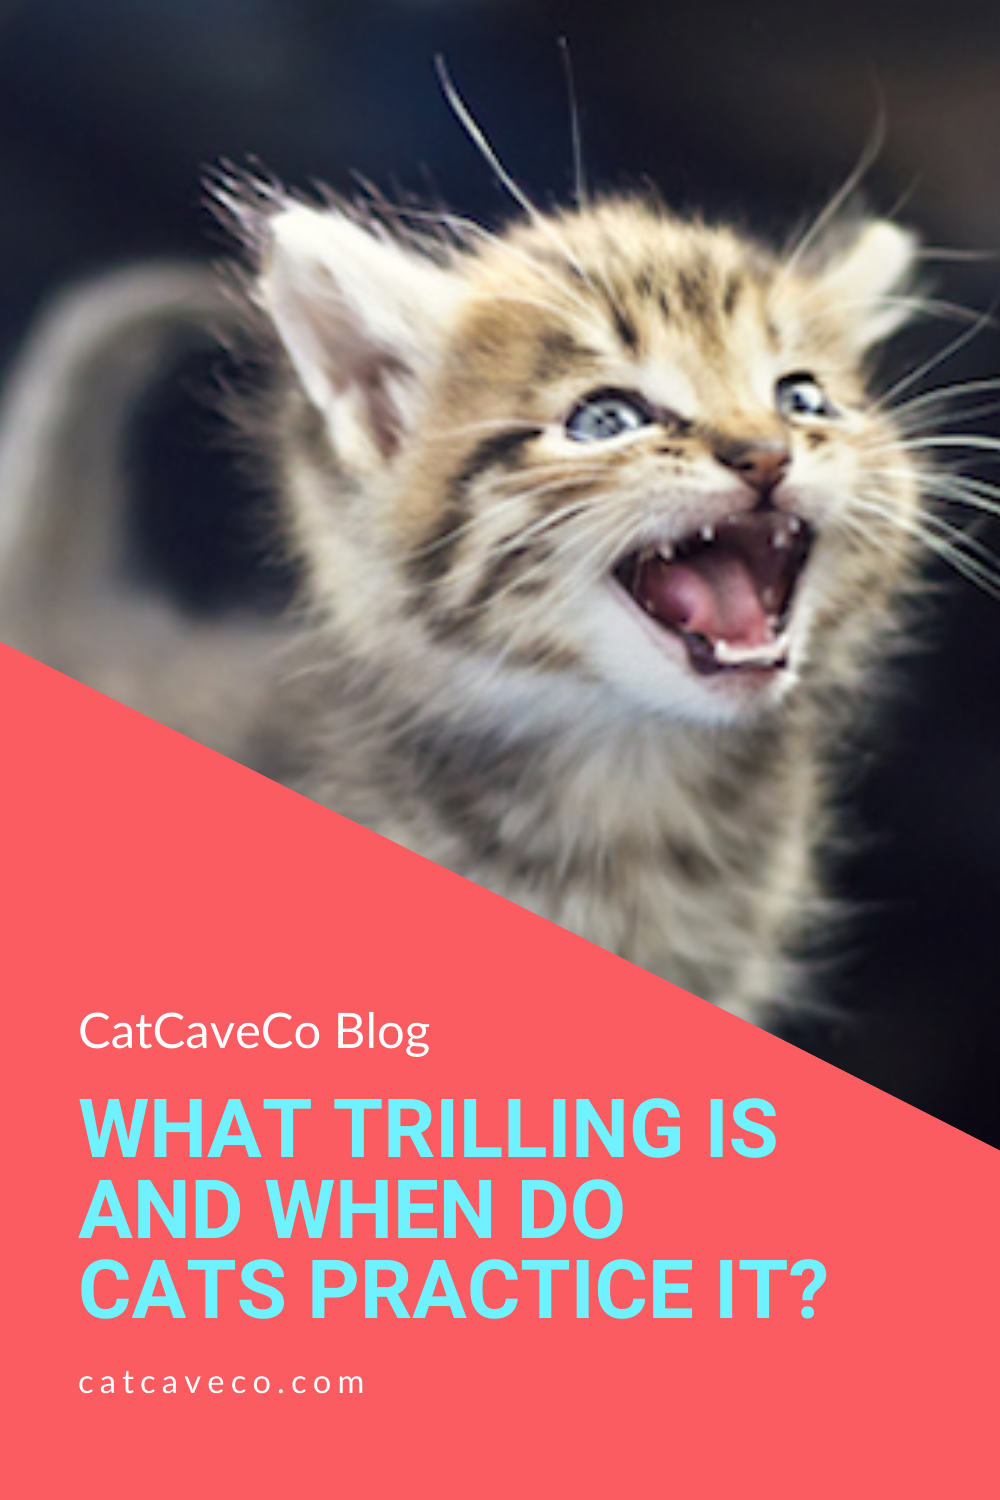 Cats Trilling And It S Practices In 2020 Cat Behavior Soothing Baby Cat Voice